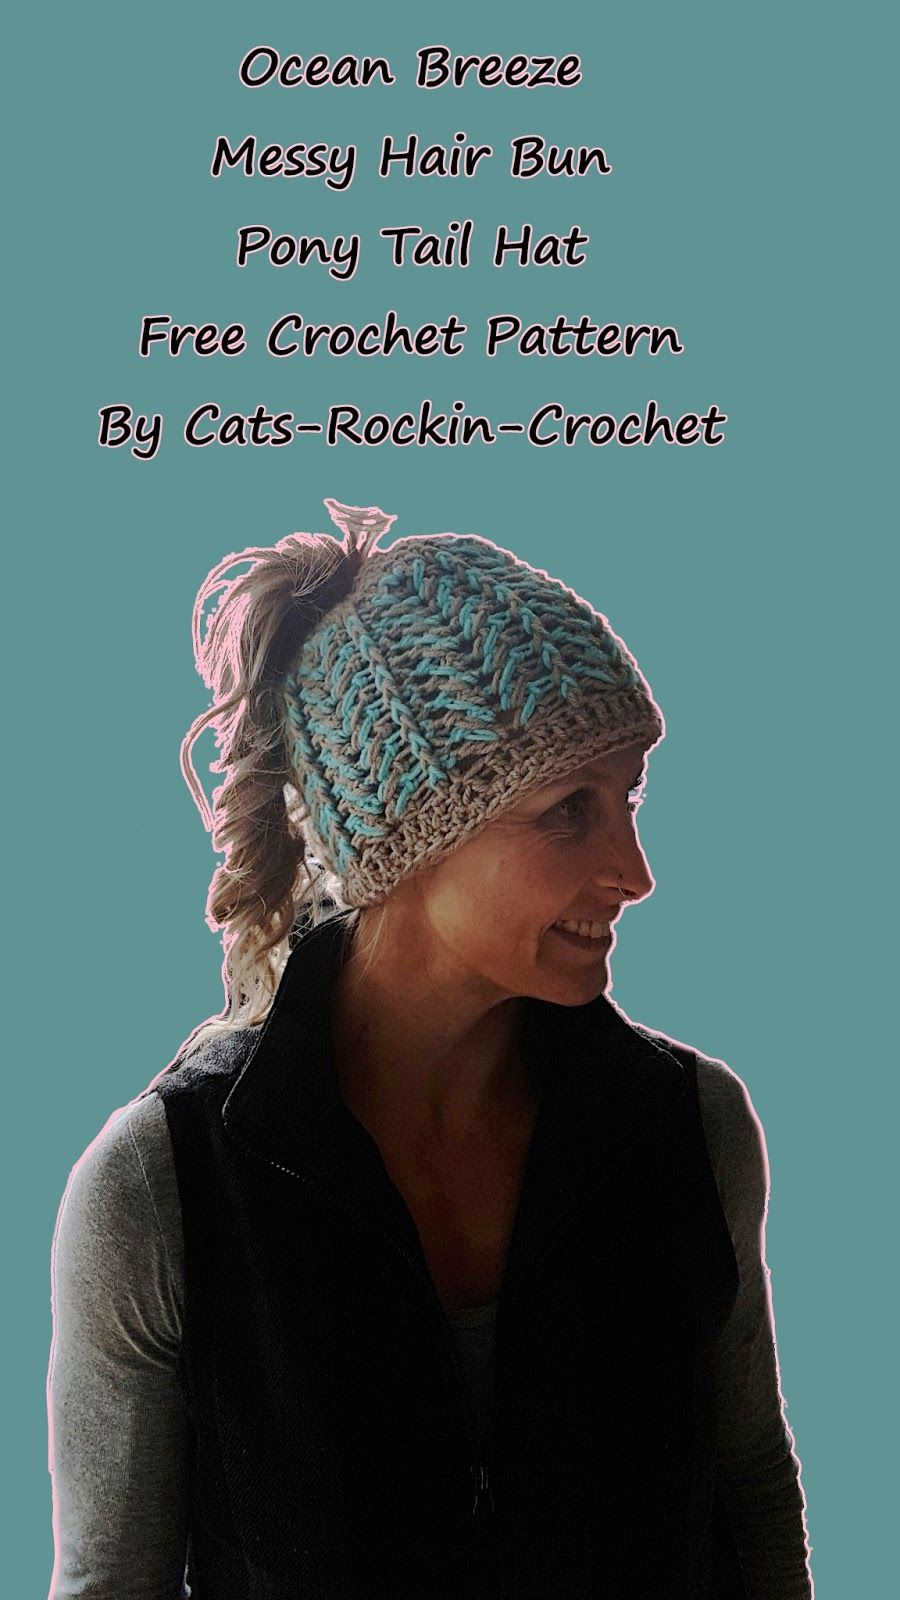 Ocean breeze messy hair buns free crochet hat patterns and free free crochet hat pattern messy hair bun pony tail hat bankloansurffo Images